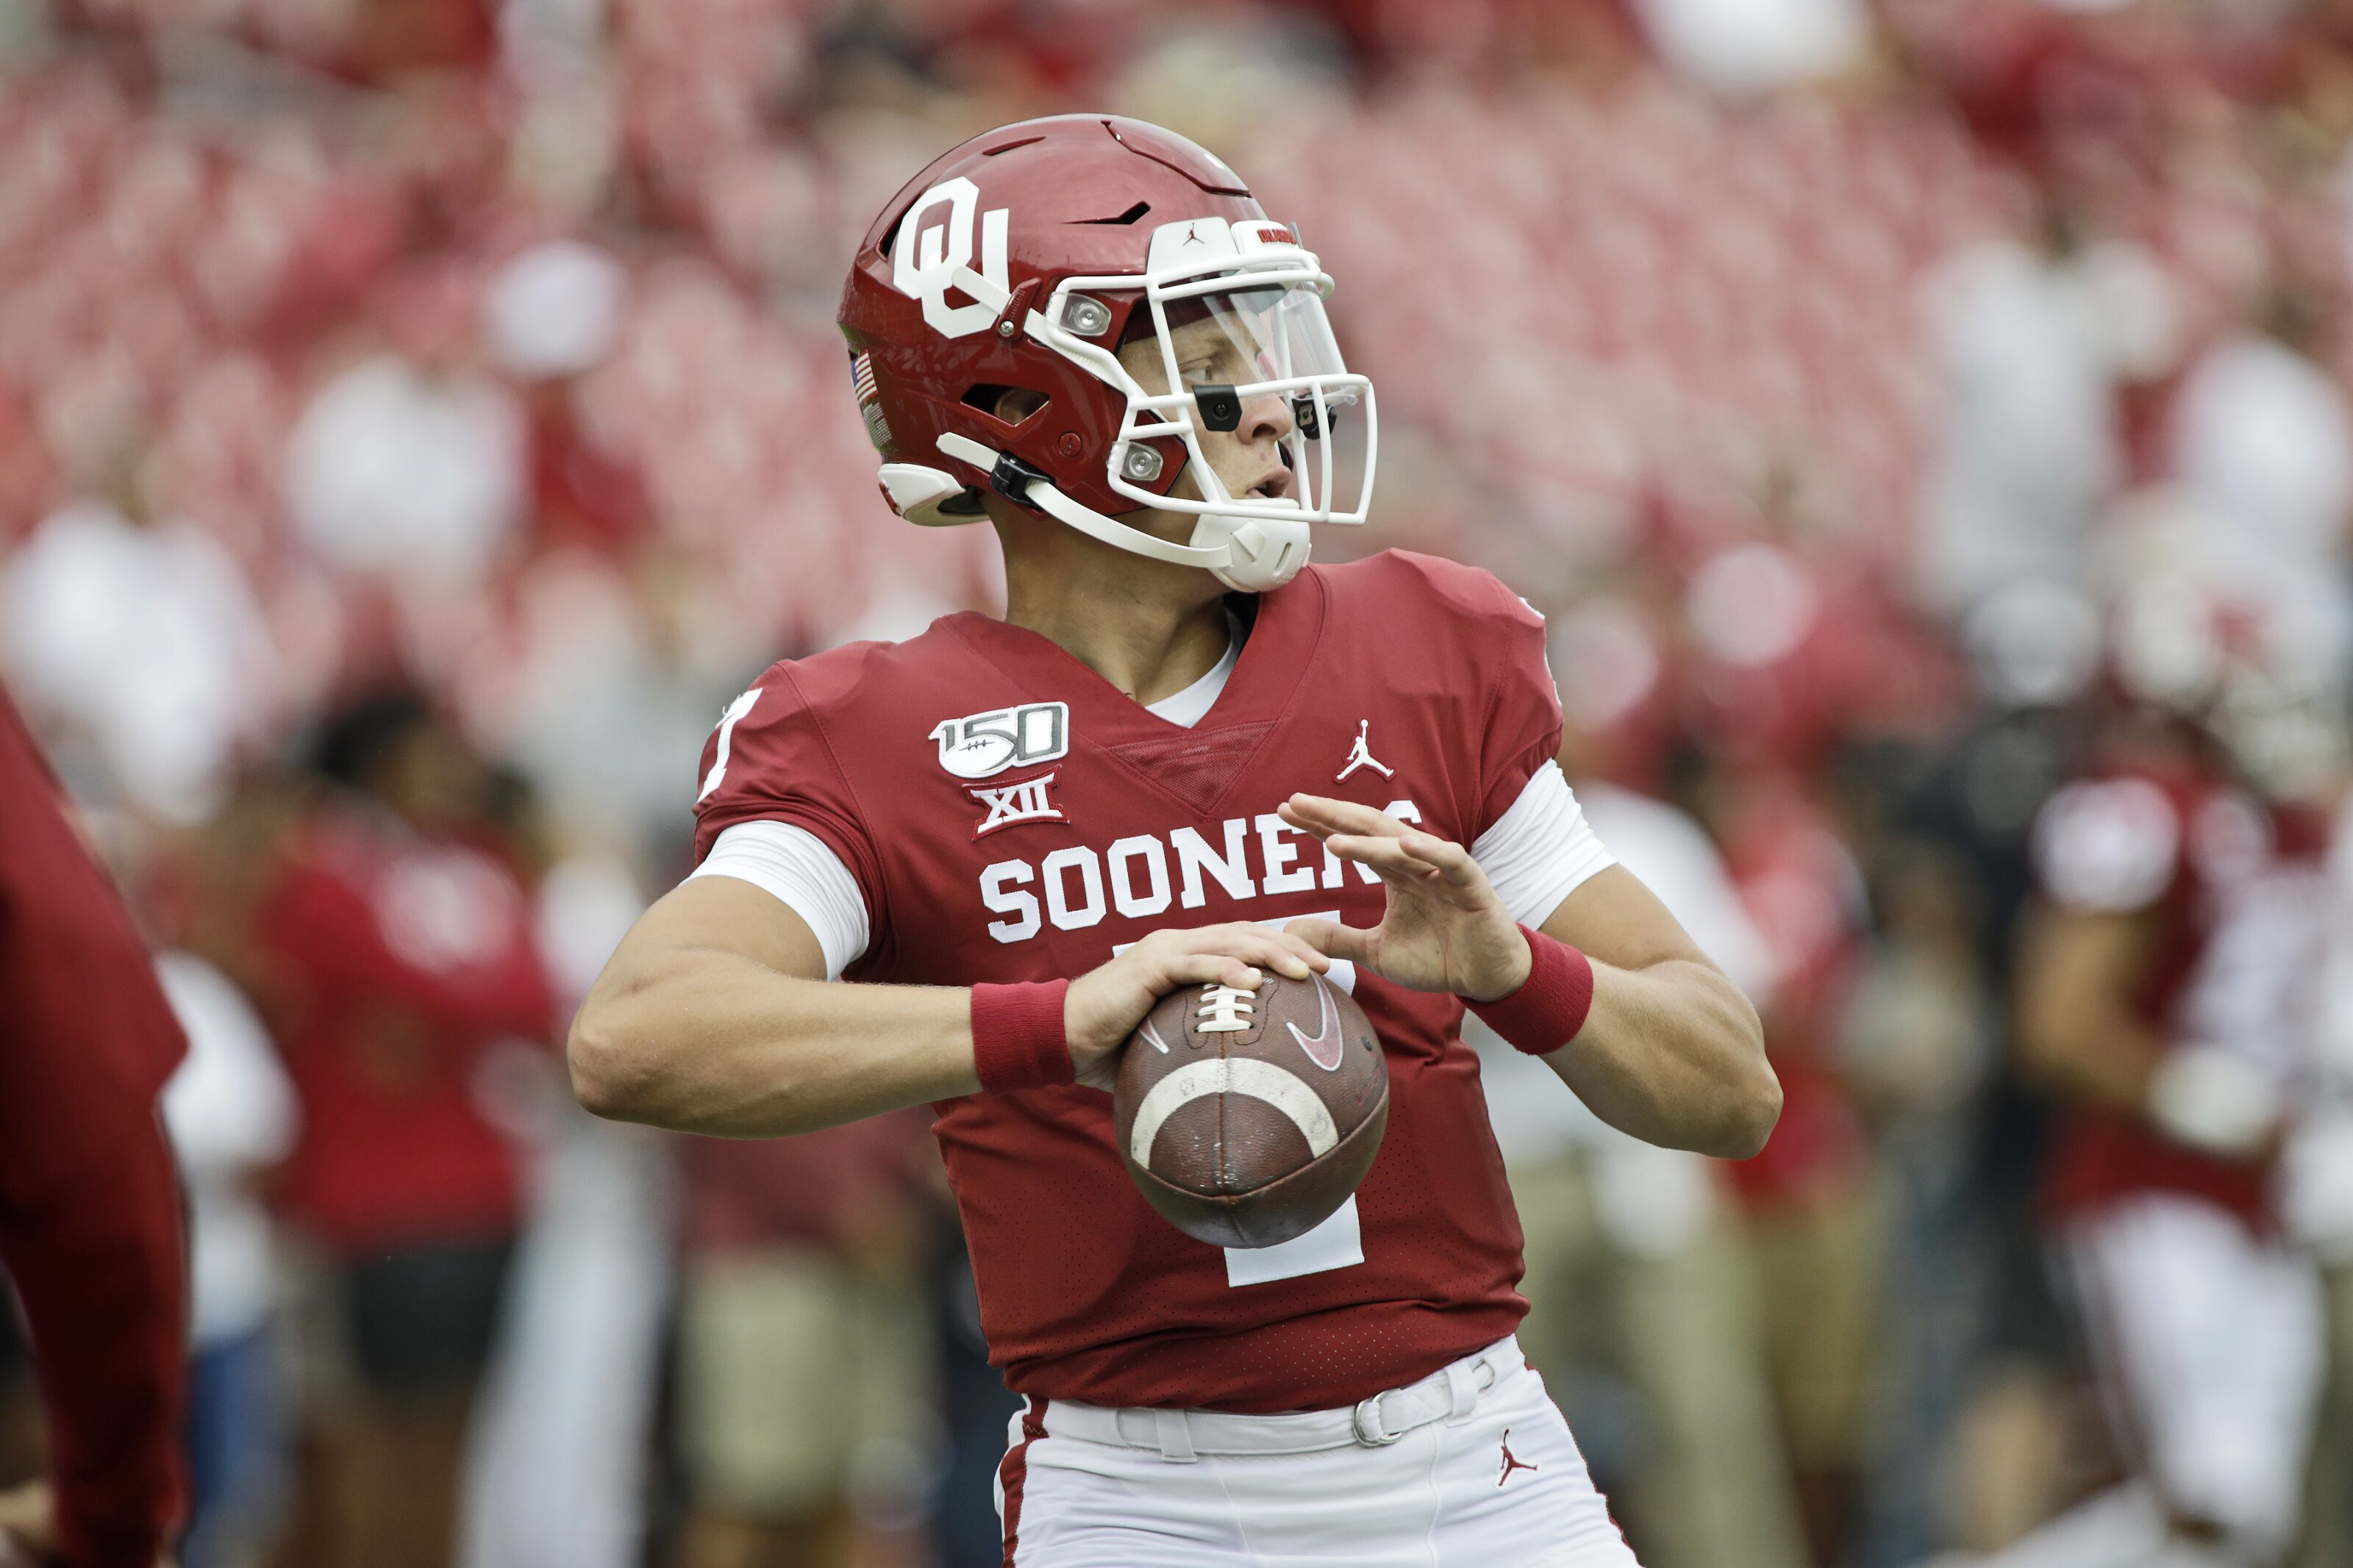 Oklahoma Football: Fans should be excited about Spencer Rattler era